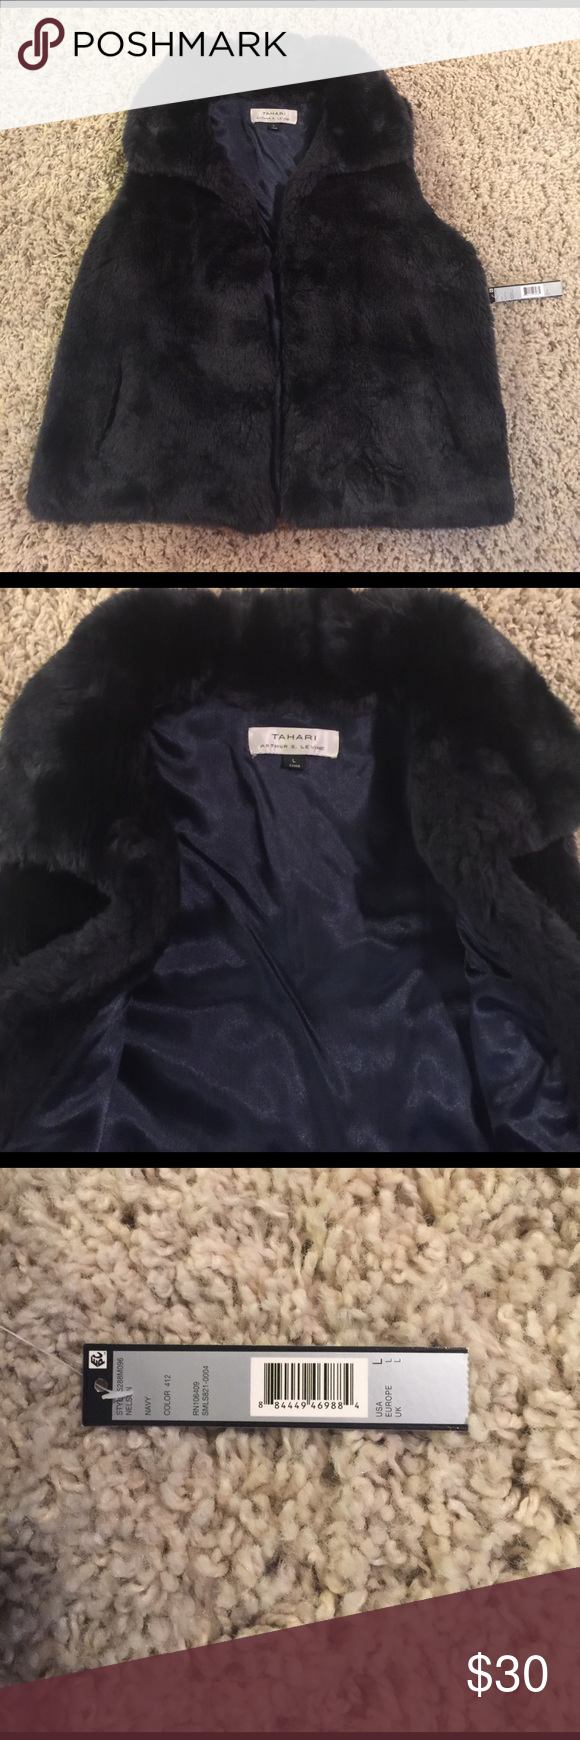 NWT Tahari by Arthur S. Levine Navy Fur Vest - L NWT Tahari by ASL navy blue fur vest. The best is lined on the inside and full faux fur (including collar) on the front and back. The vest has 3 hook and eye closures blended into the fur on the front. Please don't hesitate to ask questions! Tahari Jackets & Coats Vests